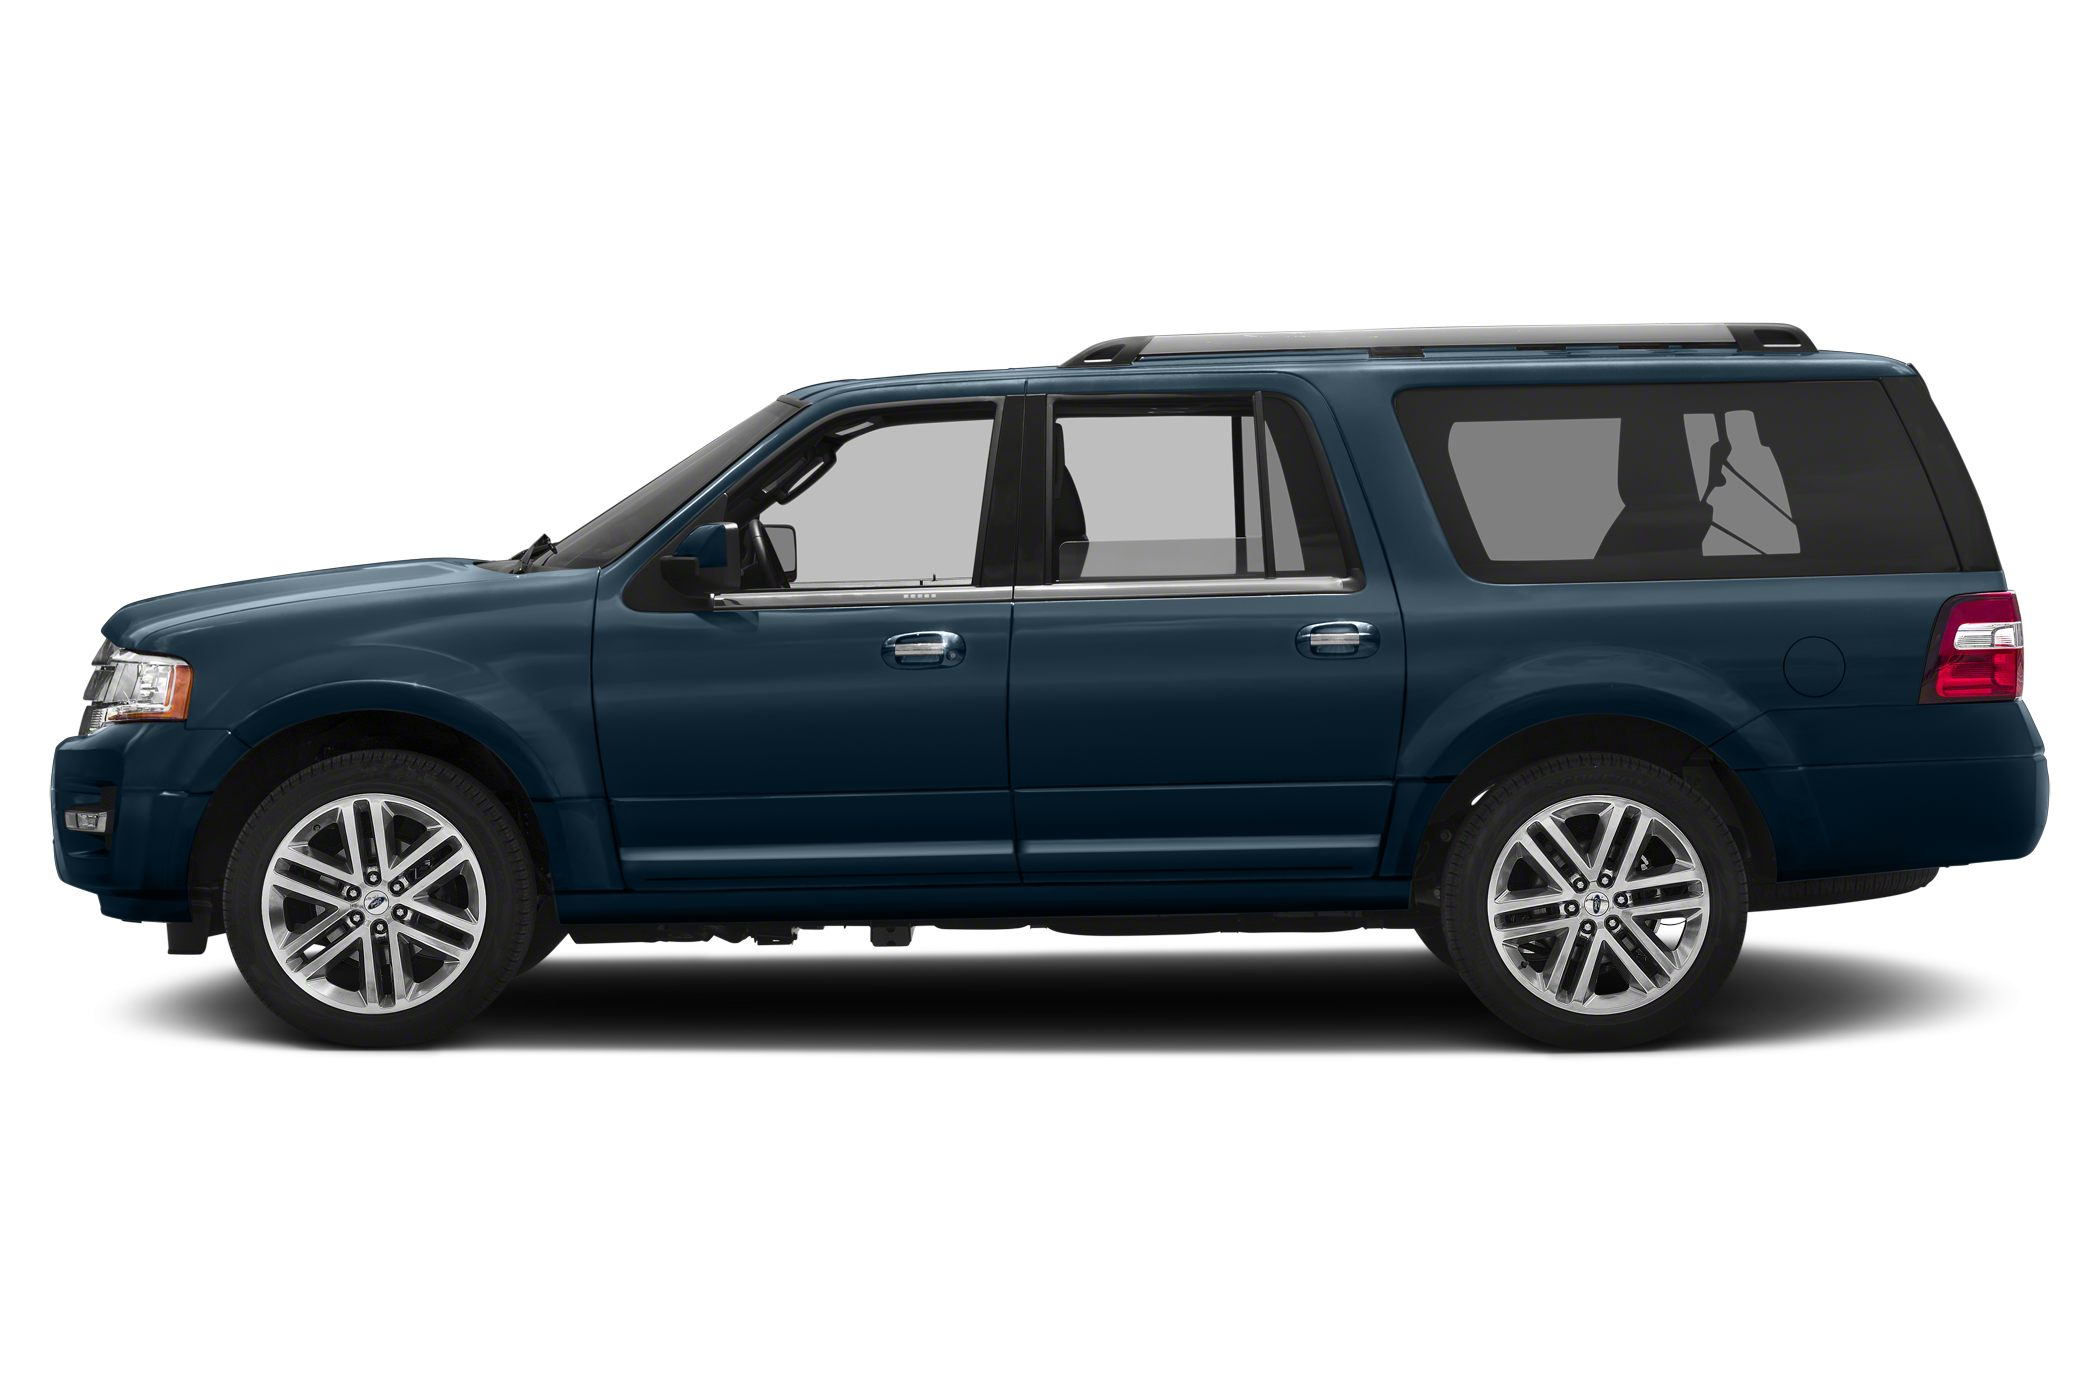 2017 Ford Expedition El Reviews Specs And Prices Cars Com